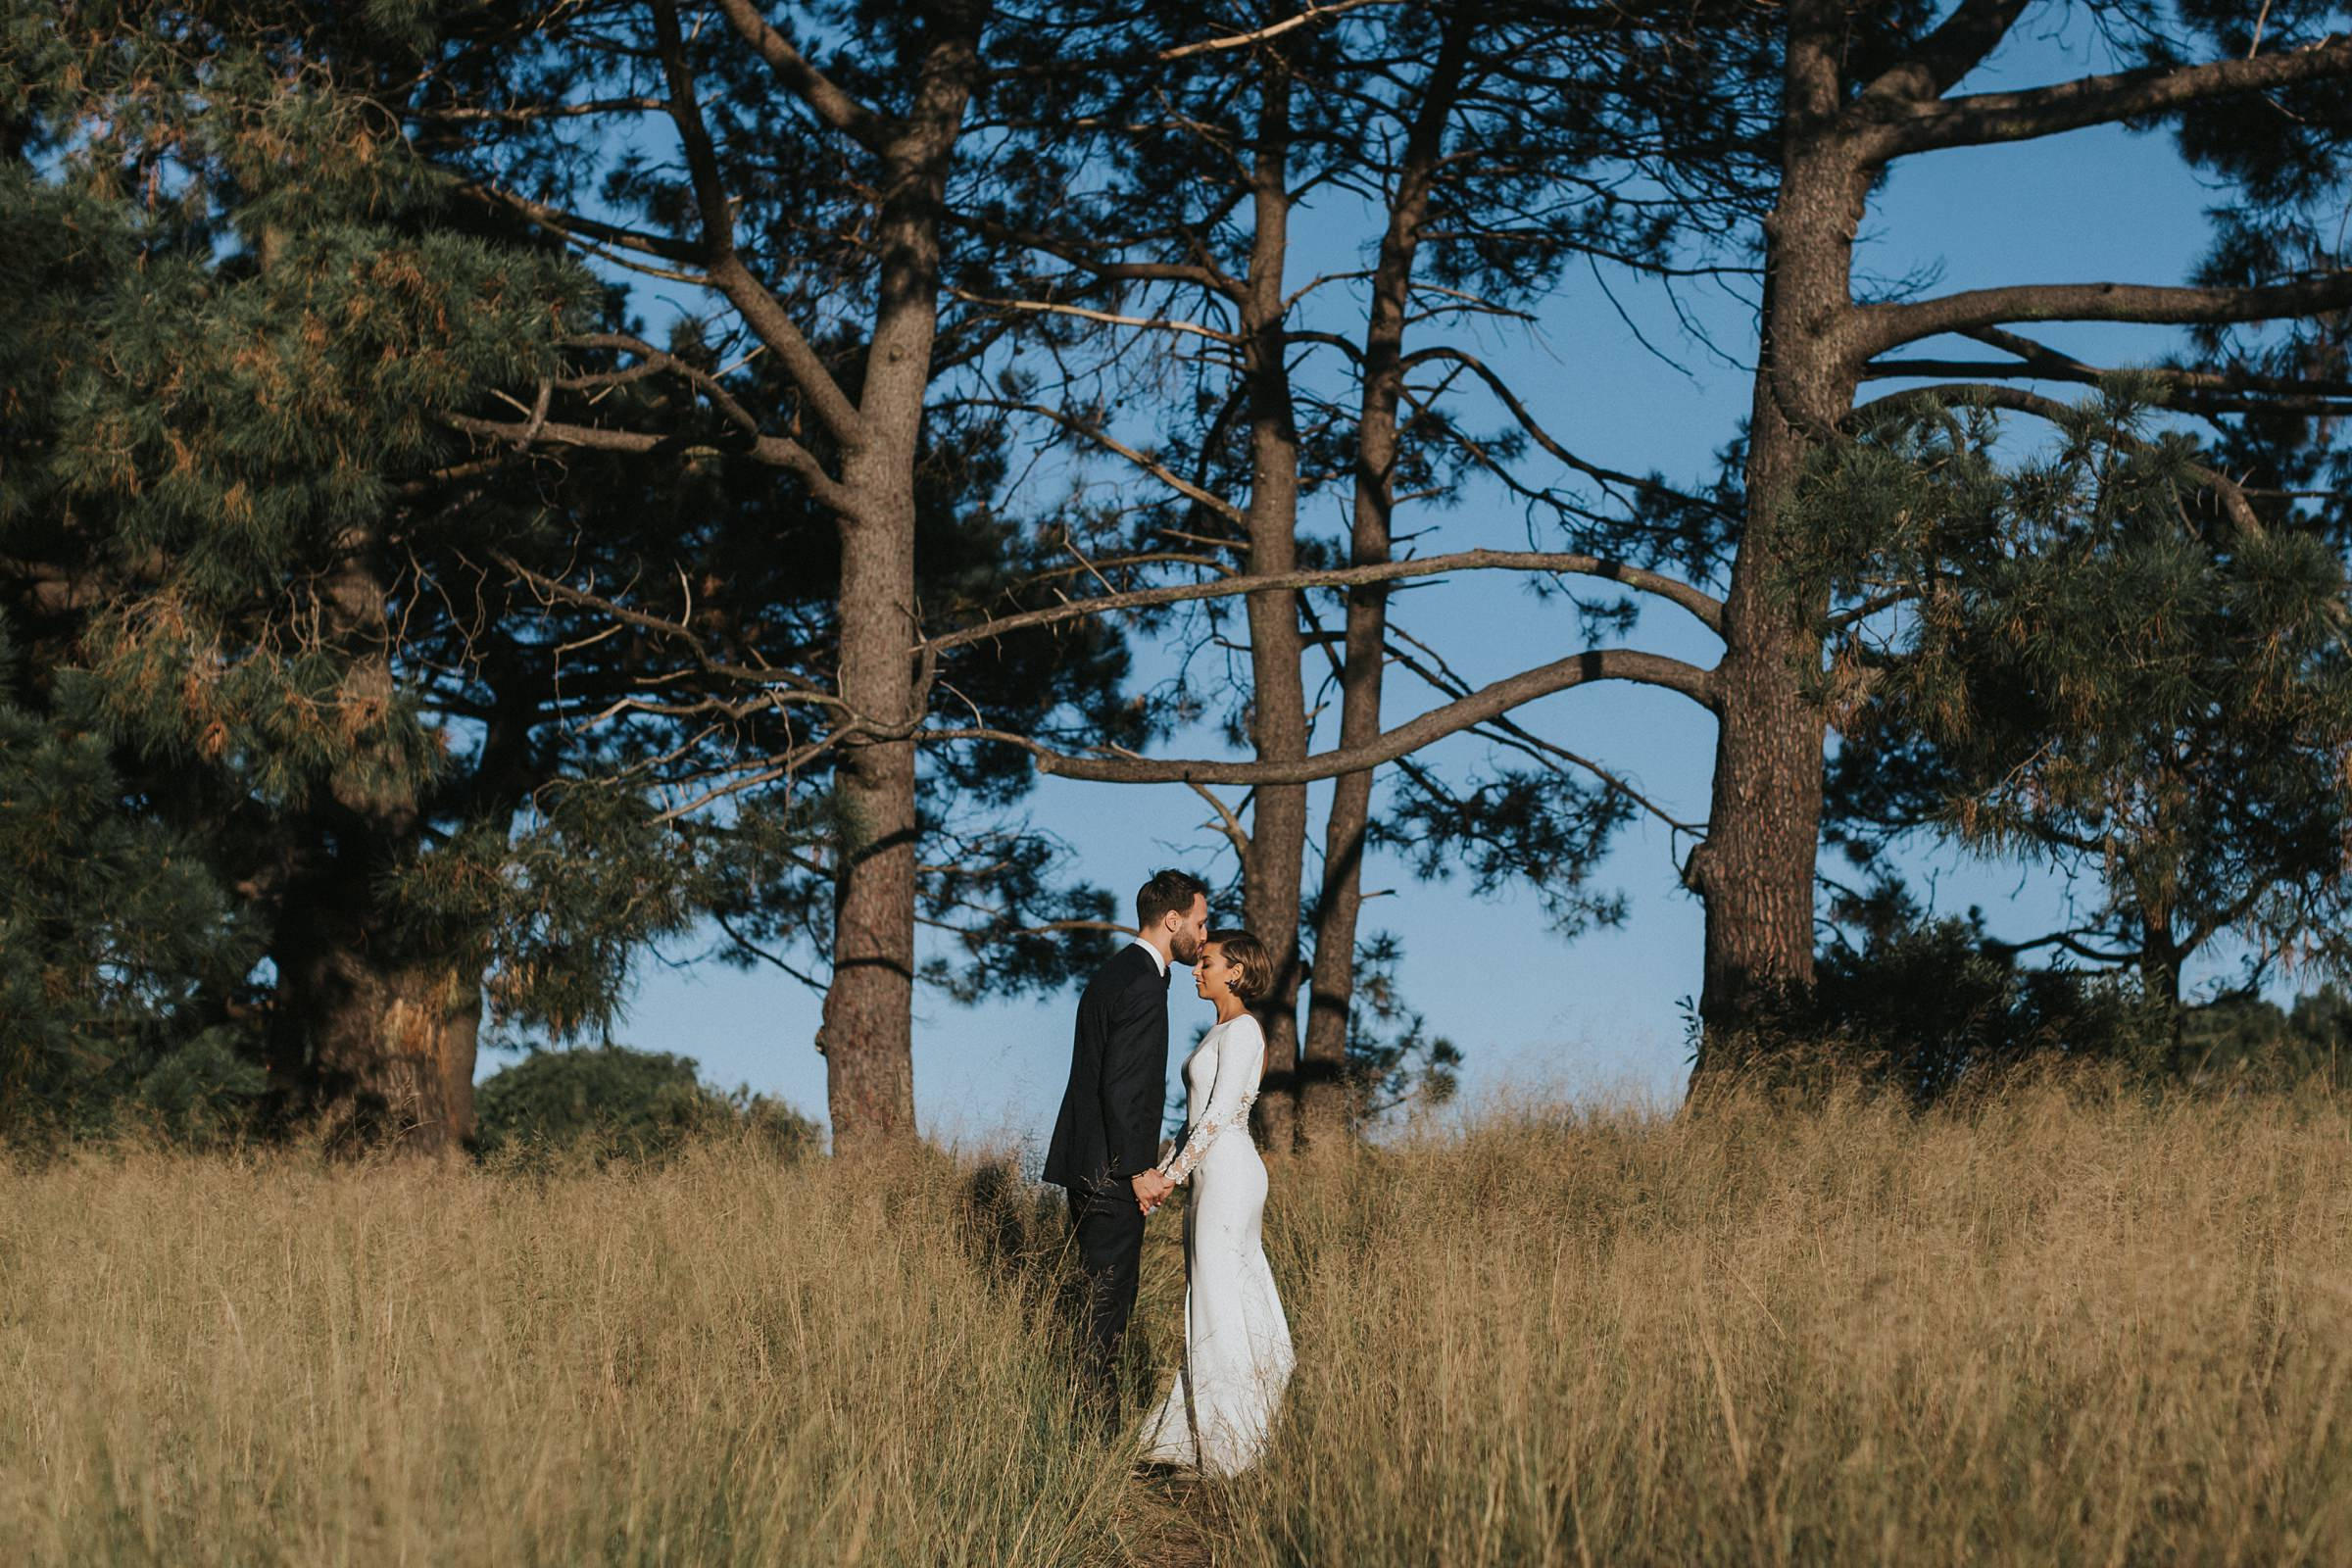 centennial park honest wedding photos